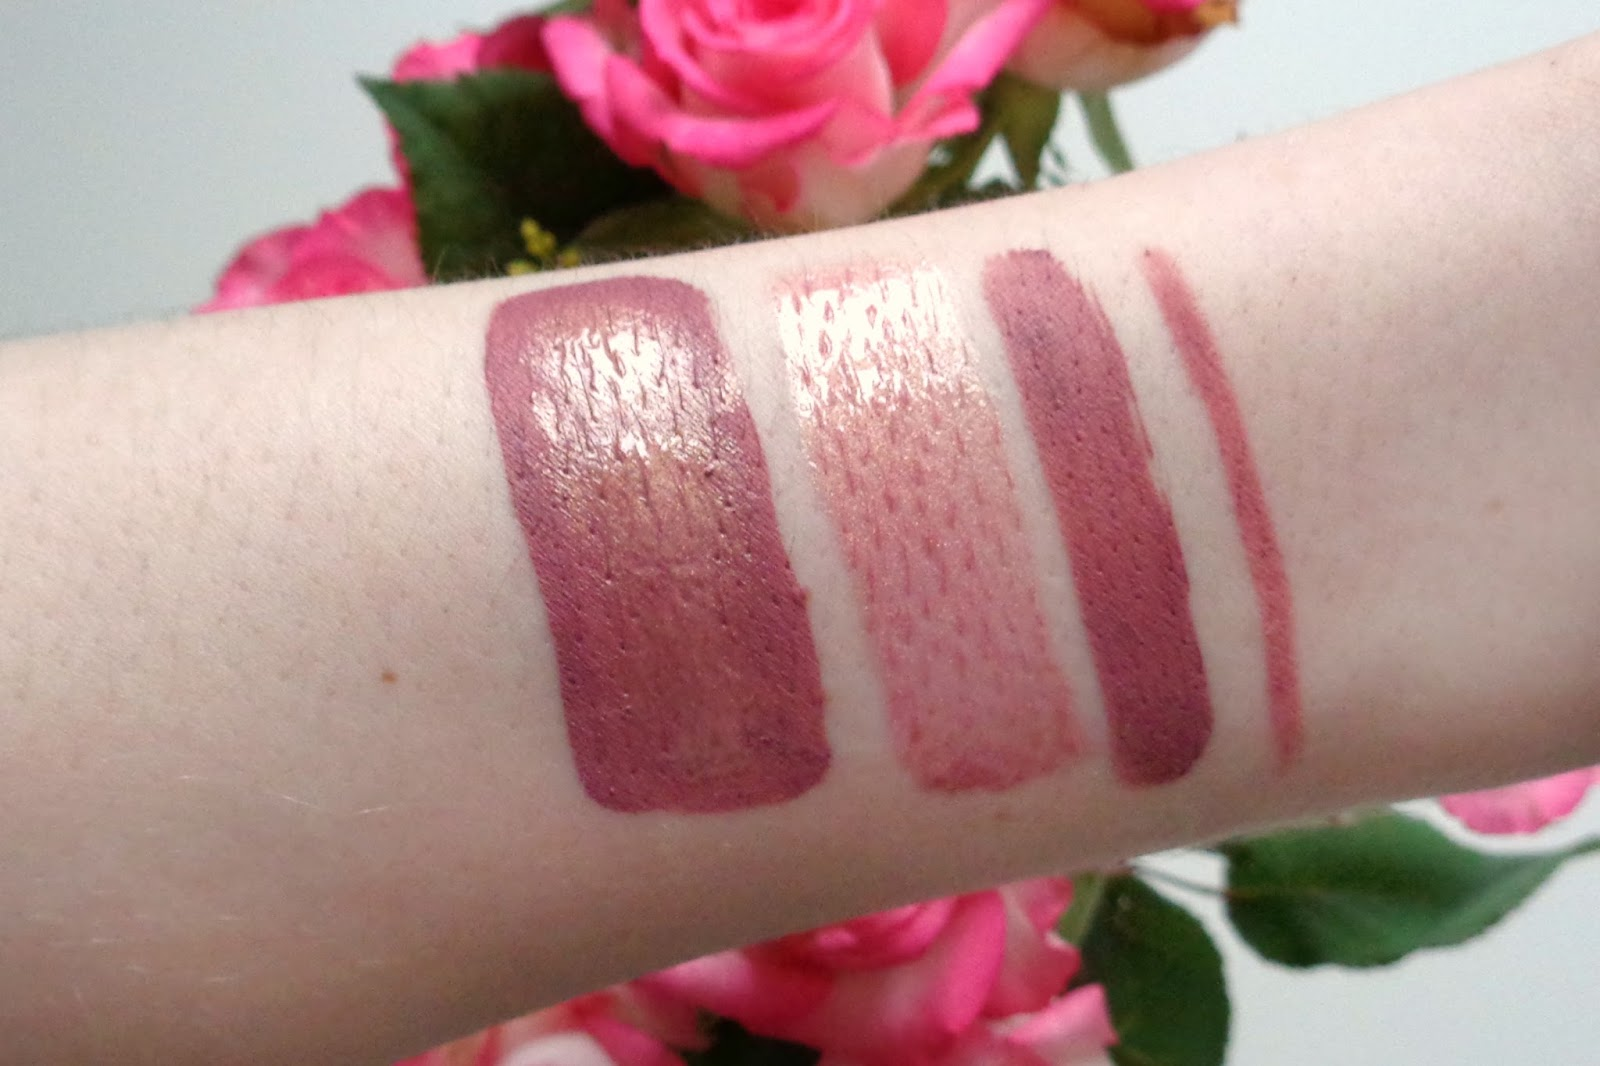 Huda Beauty Contour and Strobe Set Muse & Angelic Swatches; Huda Beauty Lip Contour Muse Swatches; Huda Beauty Liquid Matte Muse Swatches; Huda Beauty Lip Strobe Angelic Swatches